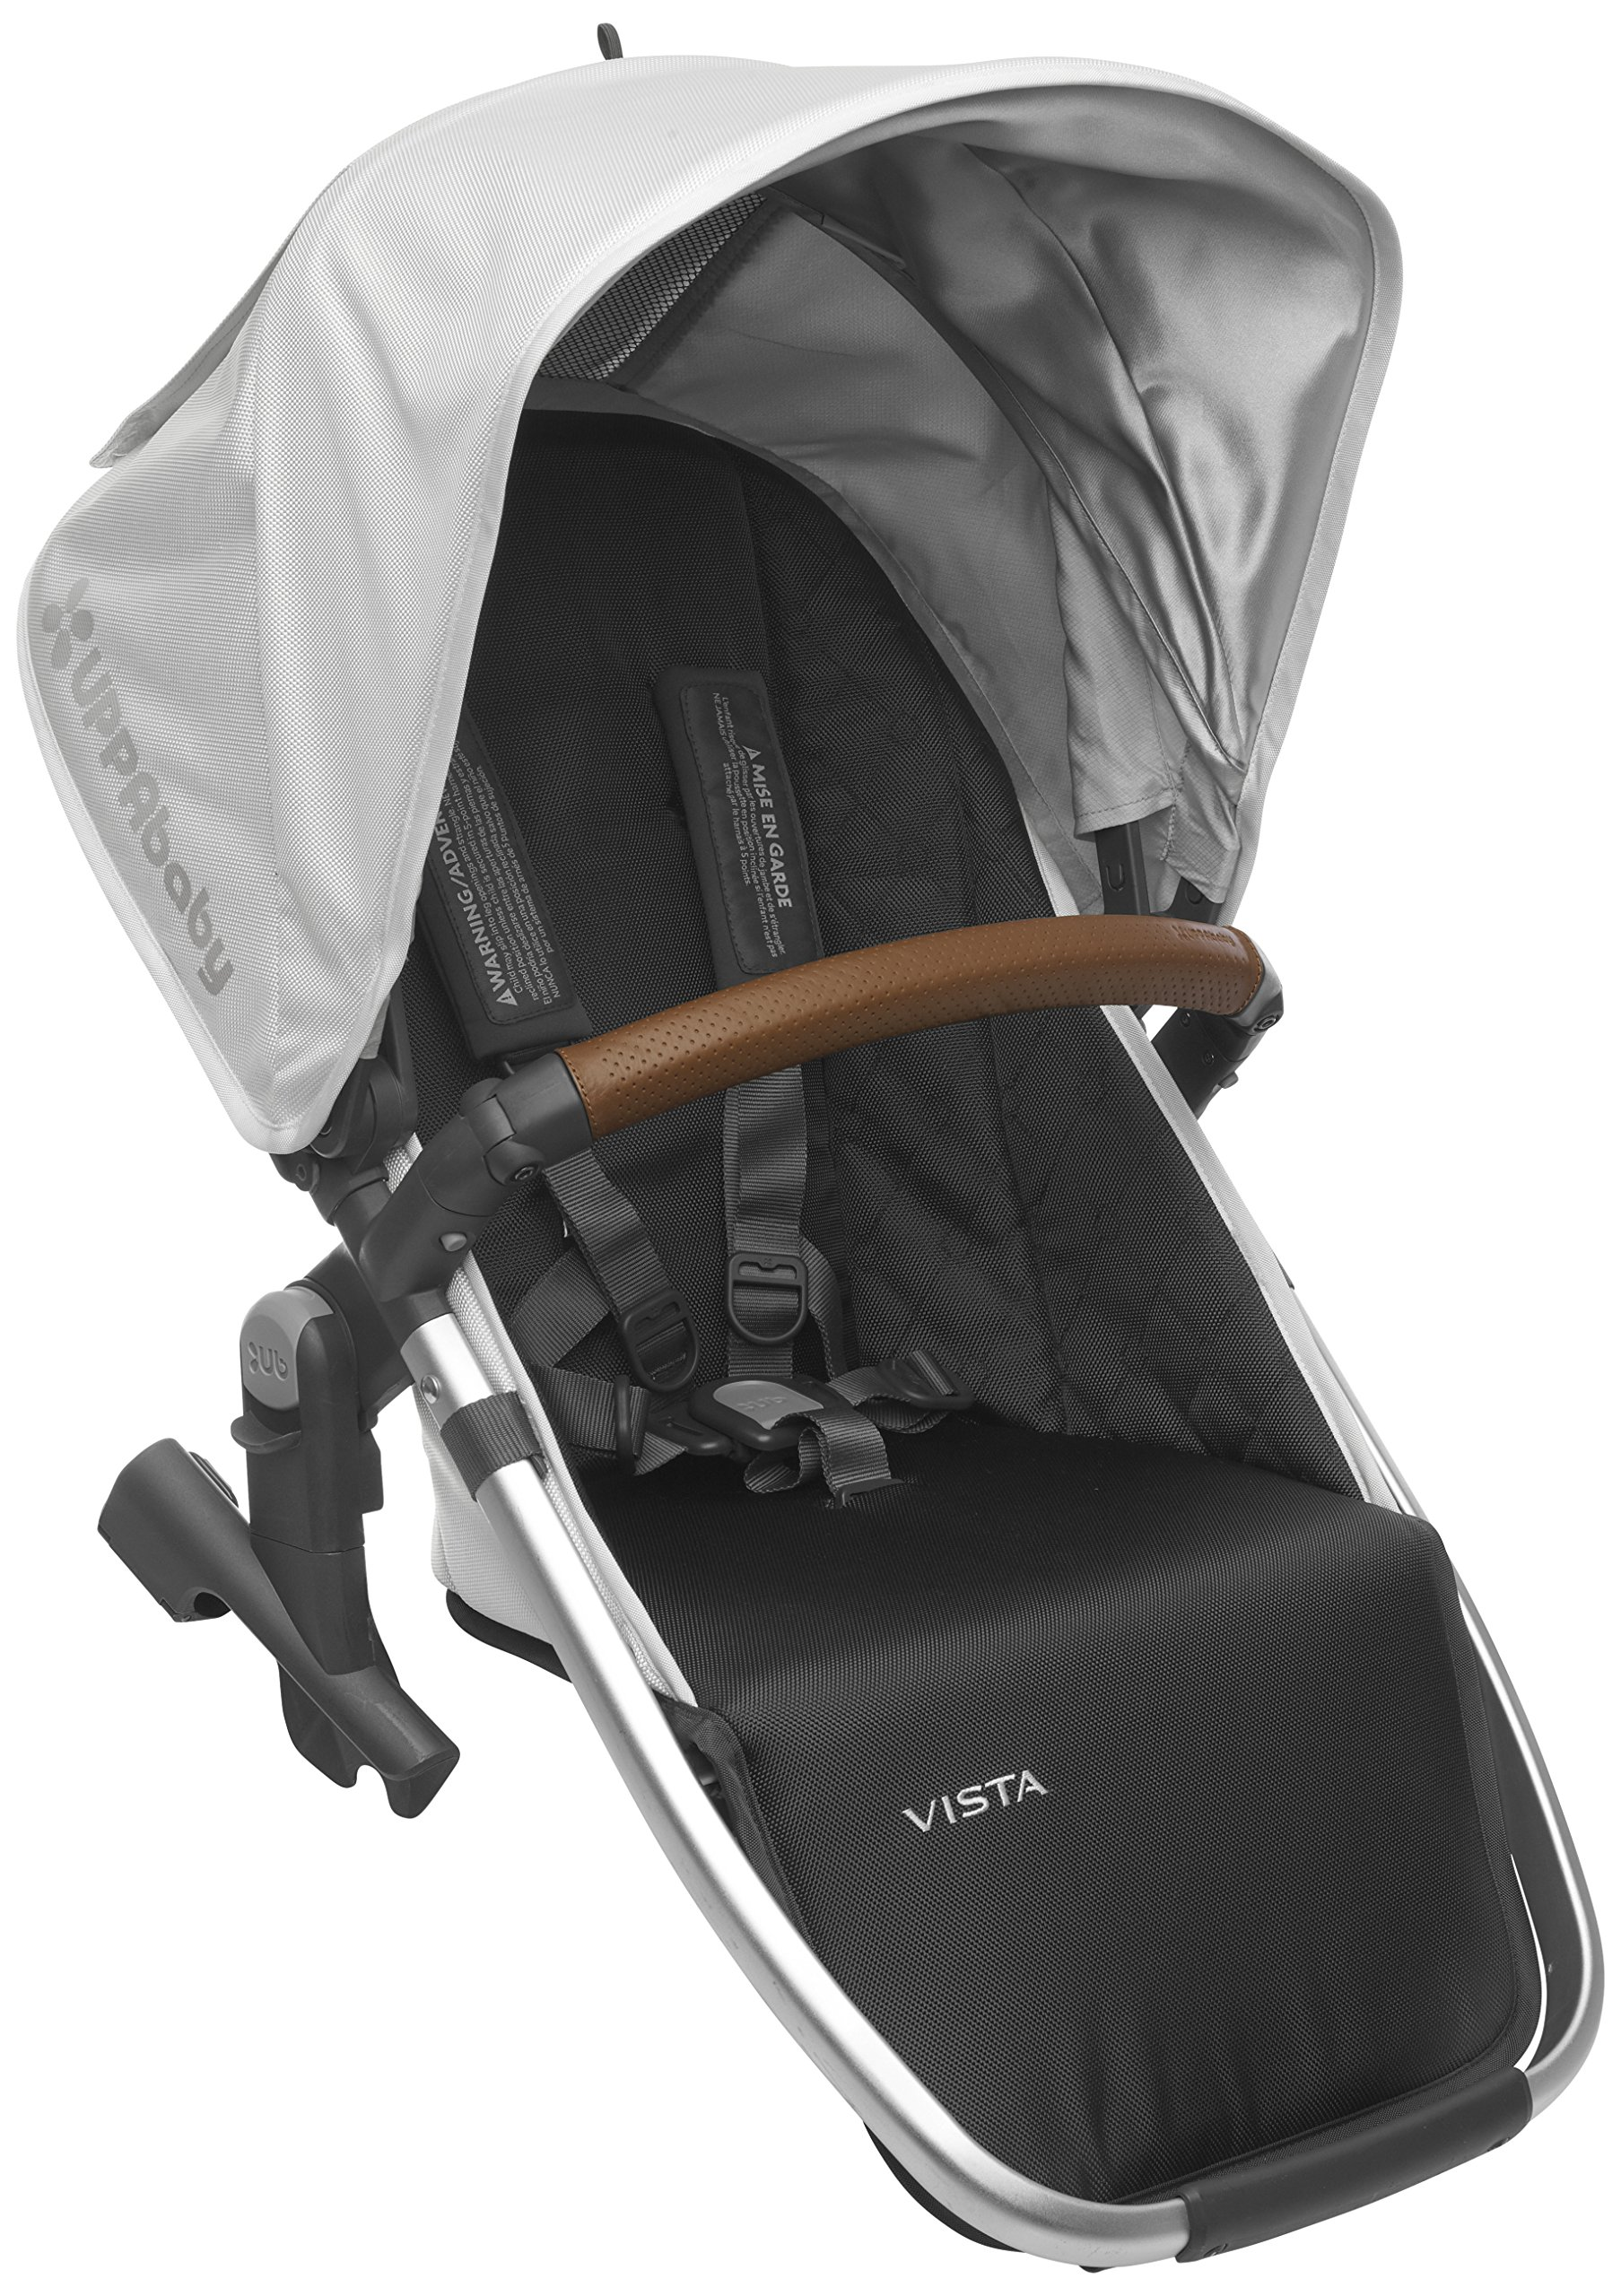 2018 UPPAbaby Vista RumbleSeat - Loic (White/Silver/Saddle Leather) by UPPAbaby